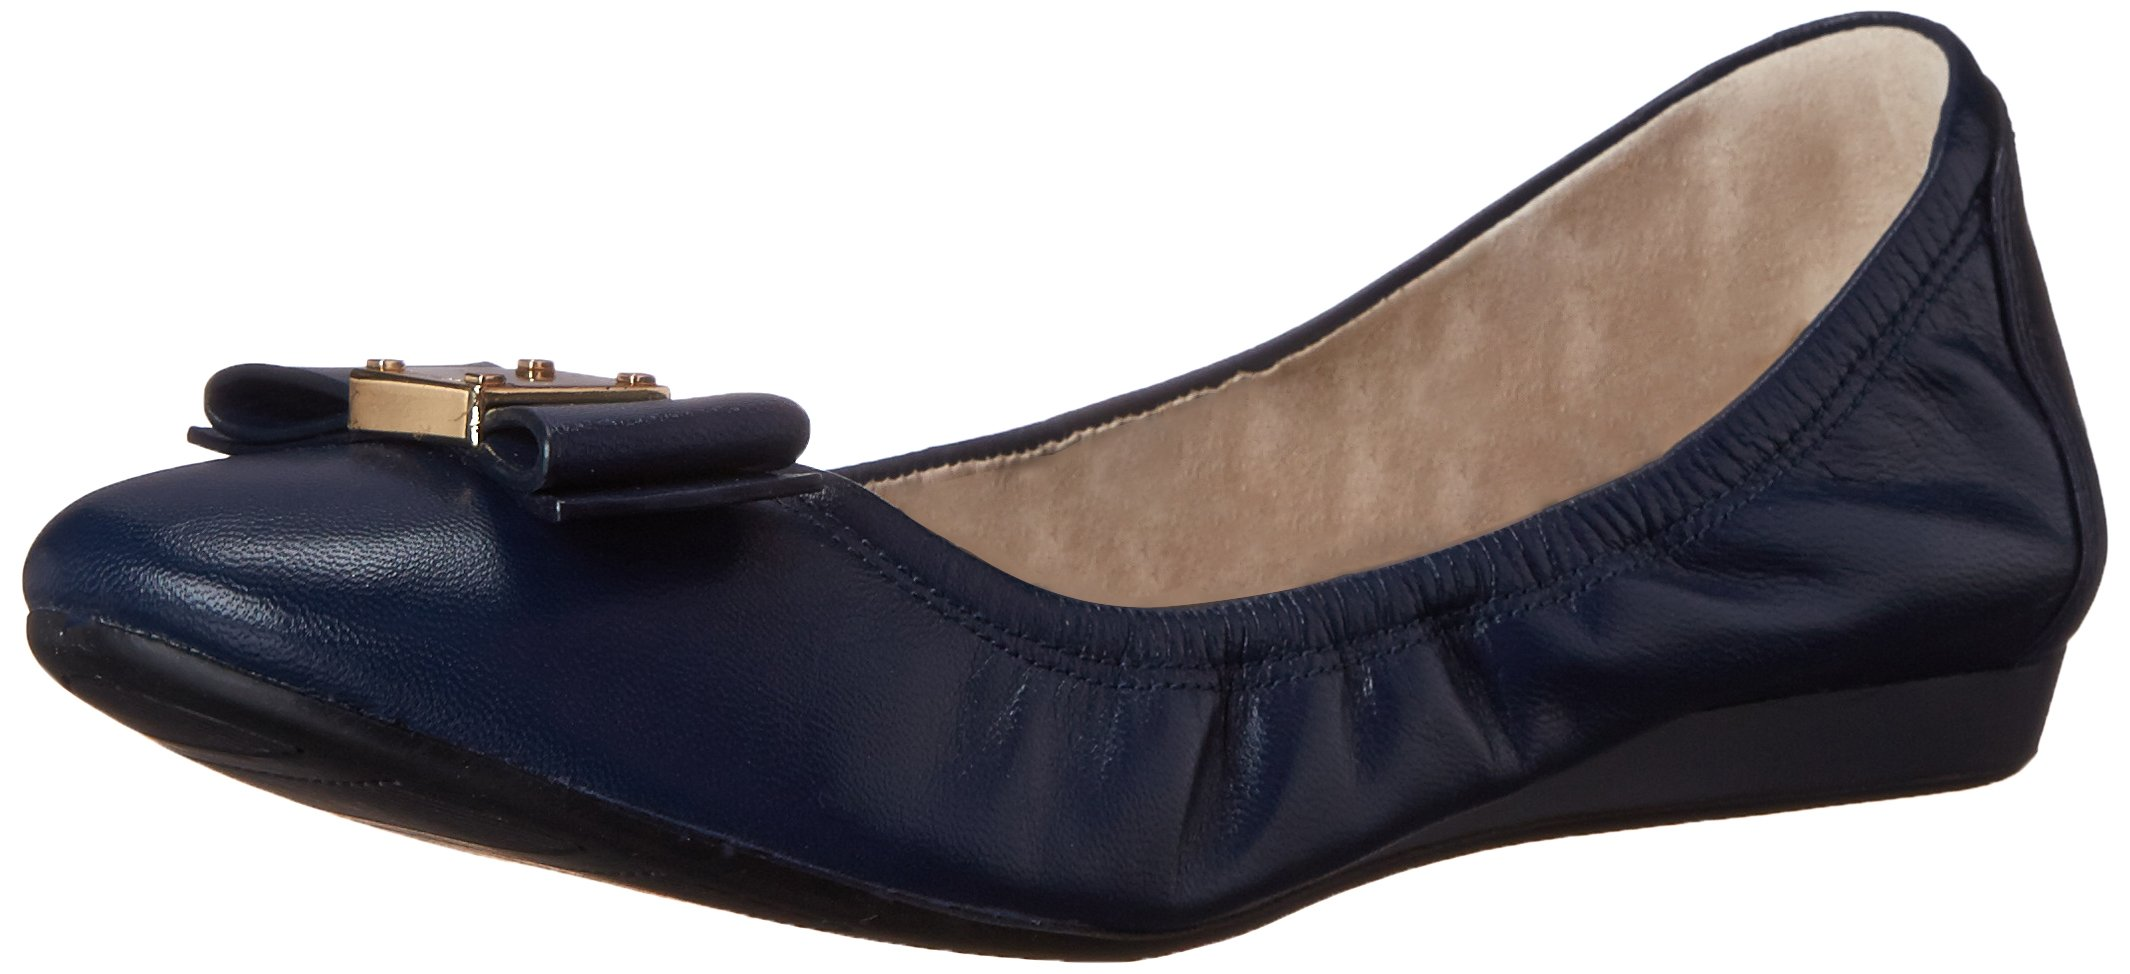 Cole Haan Women's Tali Bow Ballet Flat, Blazer Blue, 8 B US by Cole Haan (Image #1)